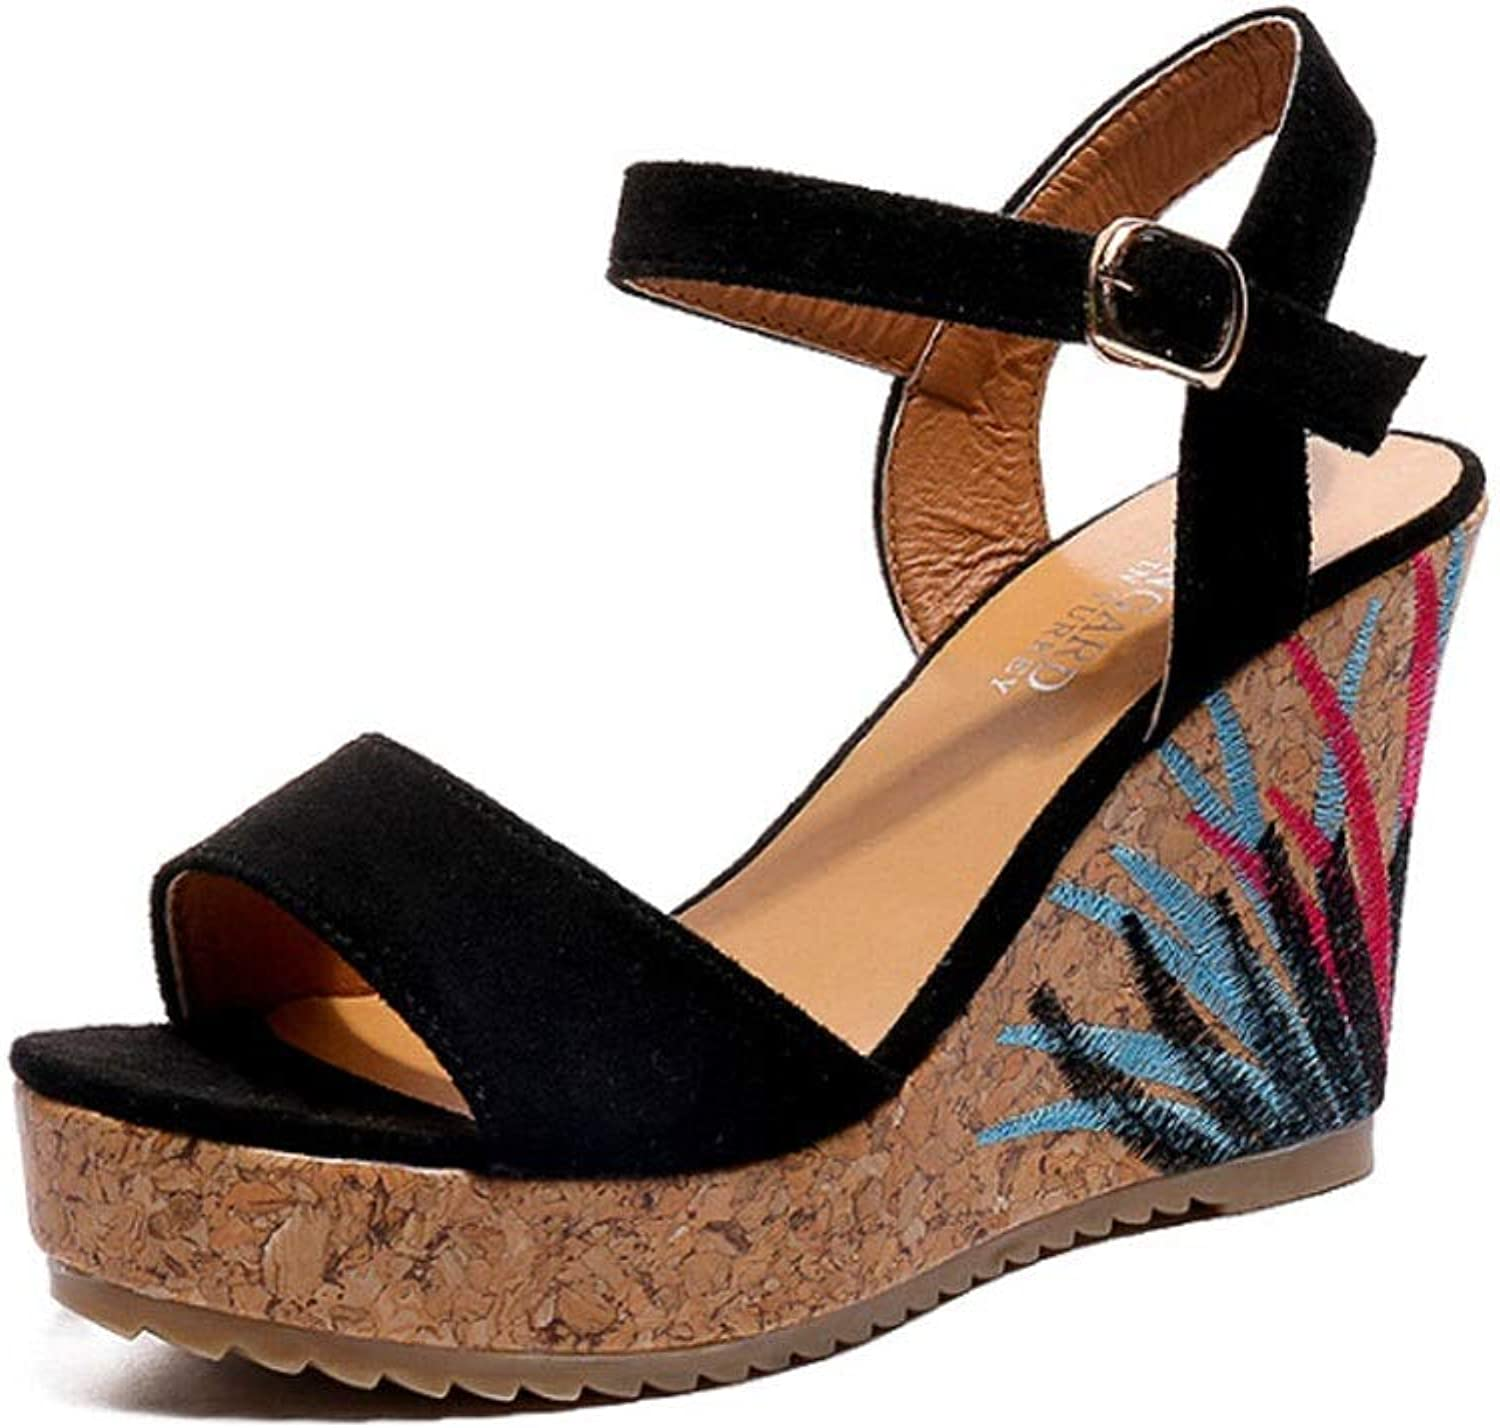 Woman Embroidered Sandals Summer High Heel Slope Heel Open Toe Women's shoes (color   Black, Size   7.5 US)